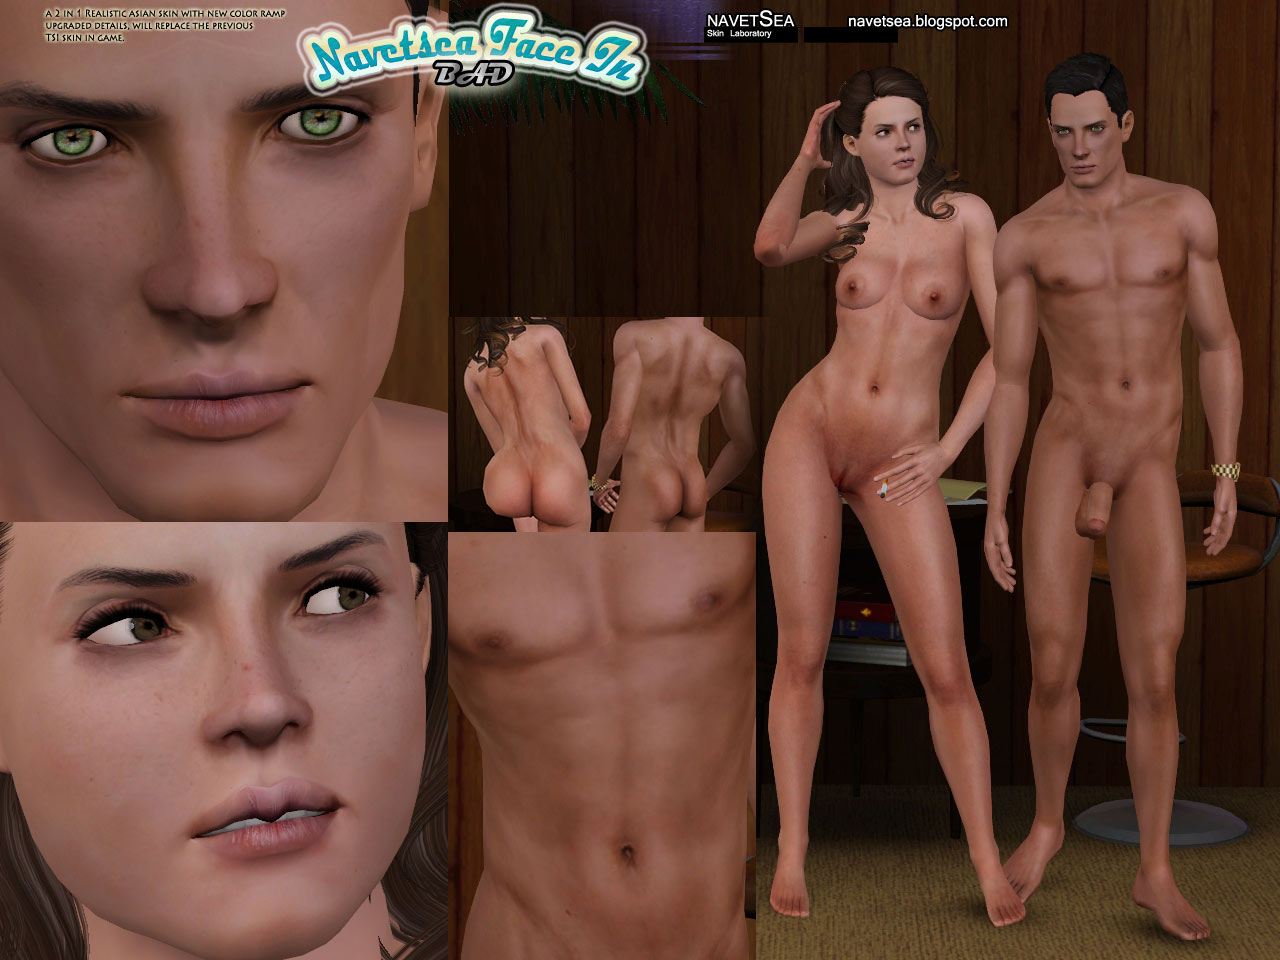 Nude mod do the sims 4 adult scene